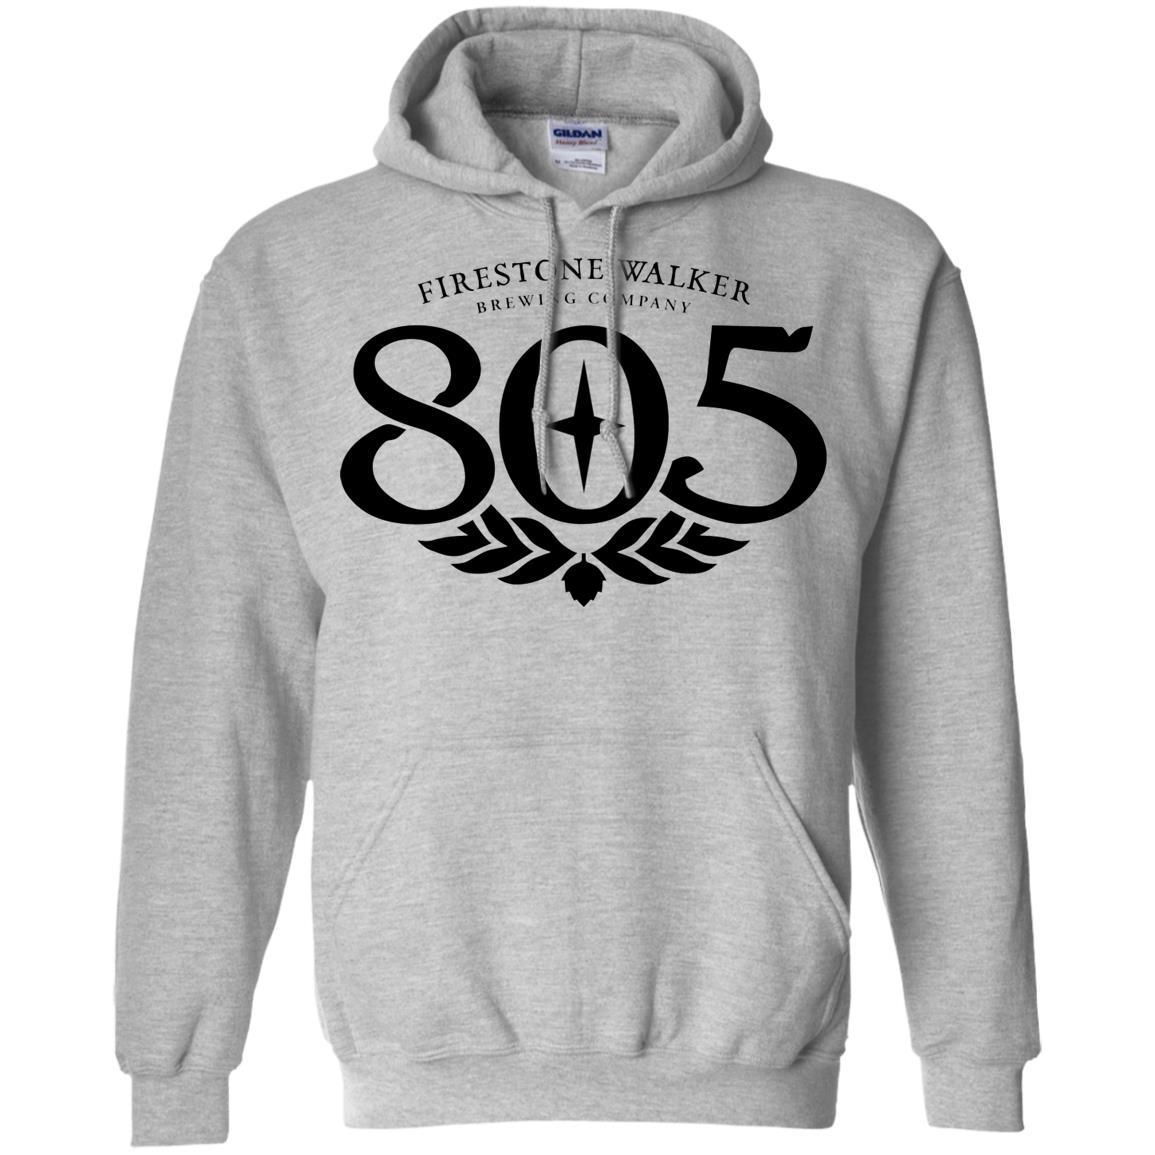 805 Beer Black - Pullover Hoodie Style / Color / Size